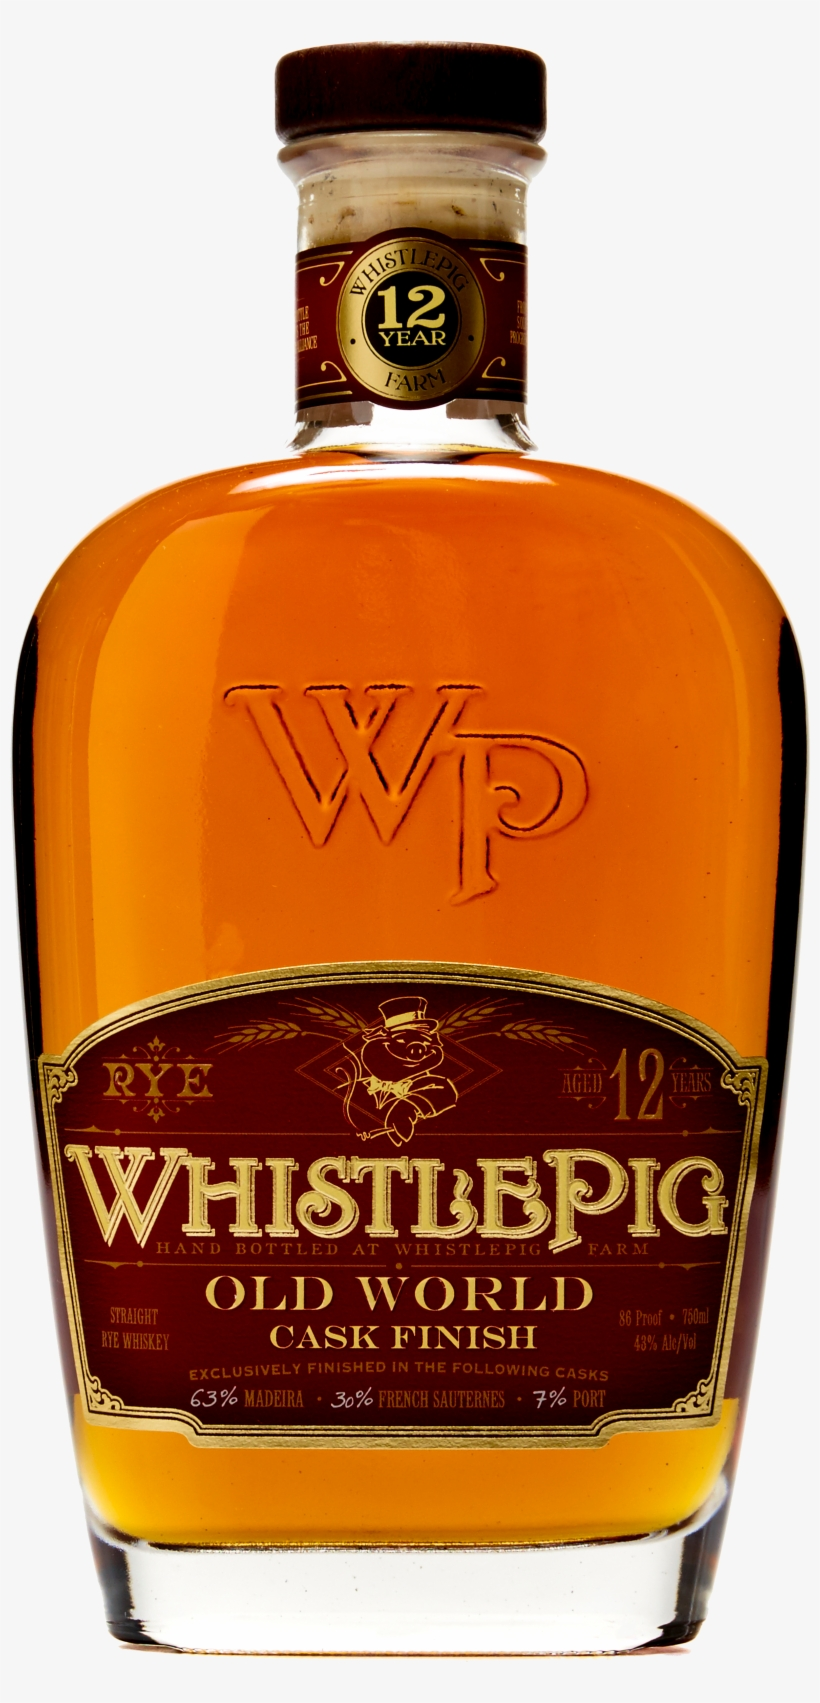 12yr Btl Shot Transparent [image] - One World Whistlepig Old World 12 Year Rye Whiskey, transparent png #3107476